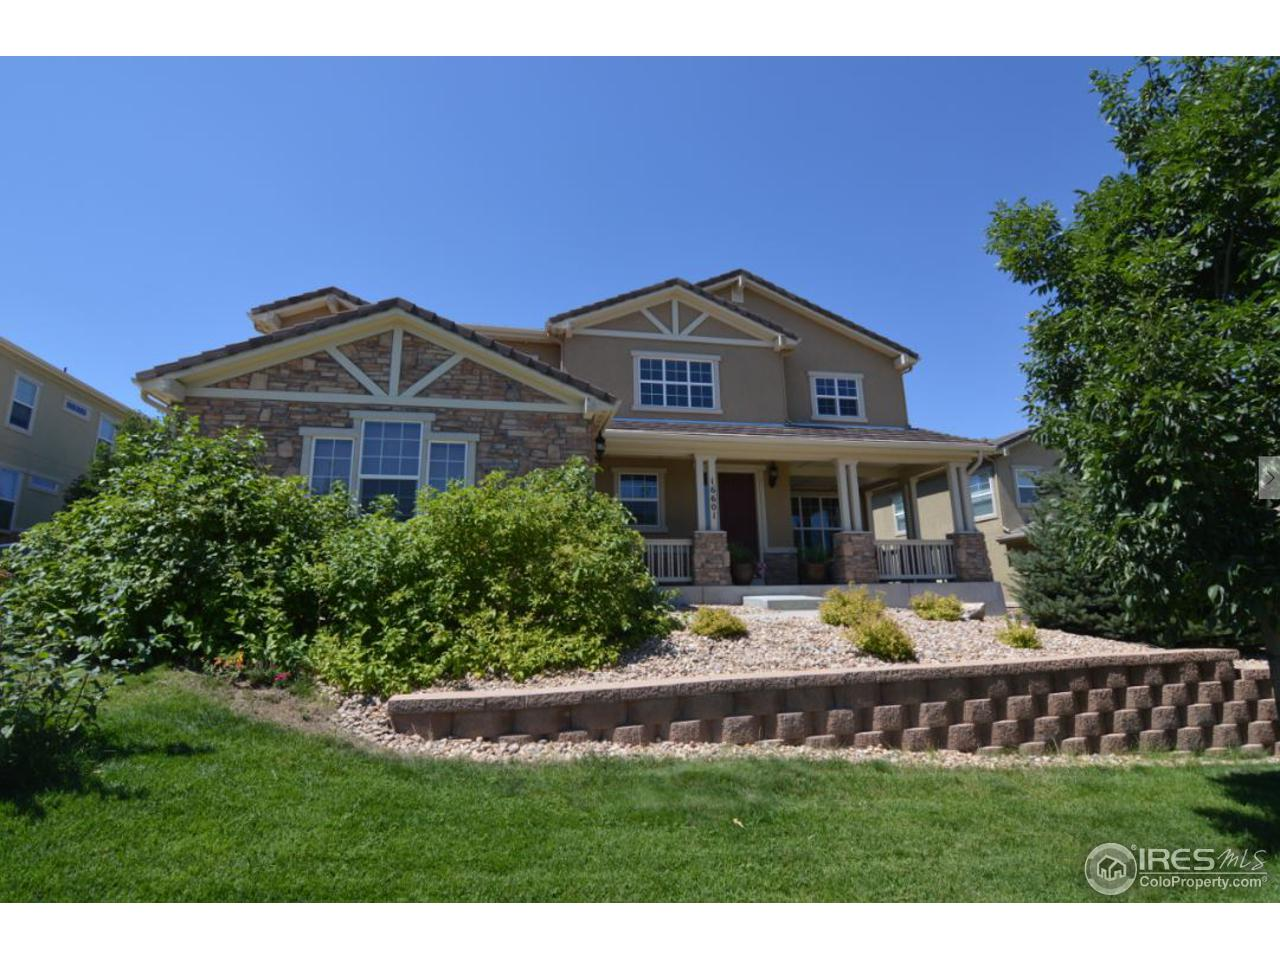 16601 Dyer Way, Broomfield, CO 80023